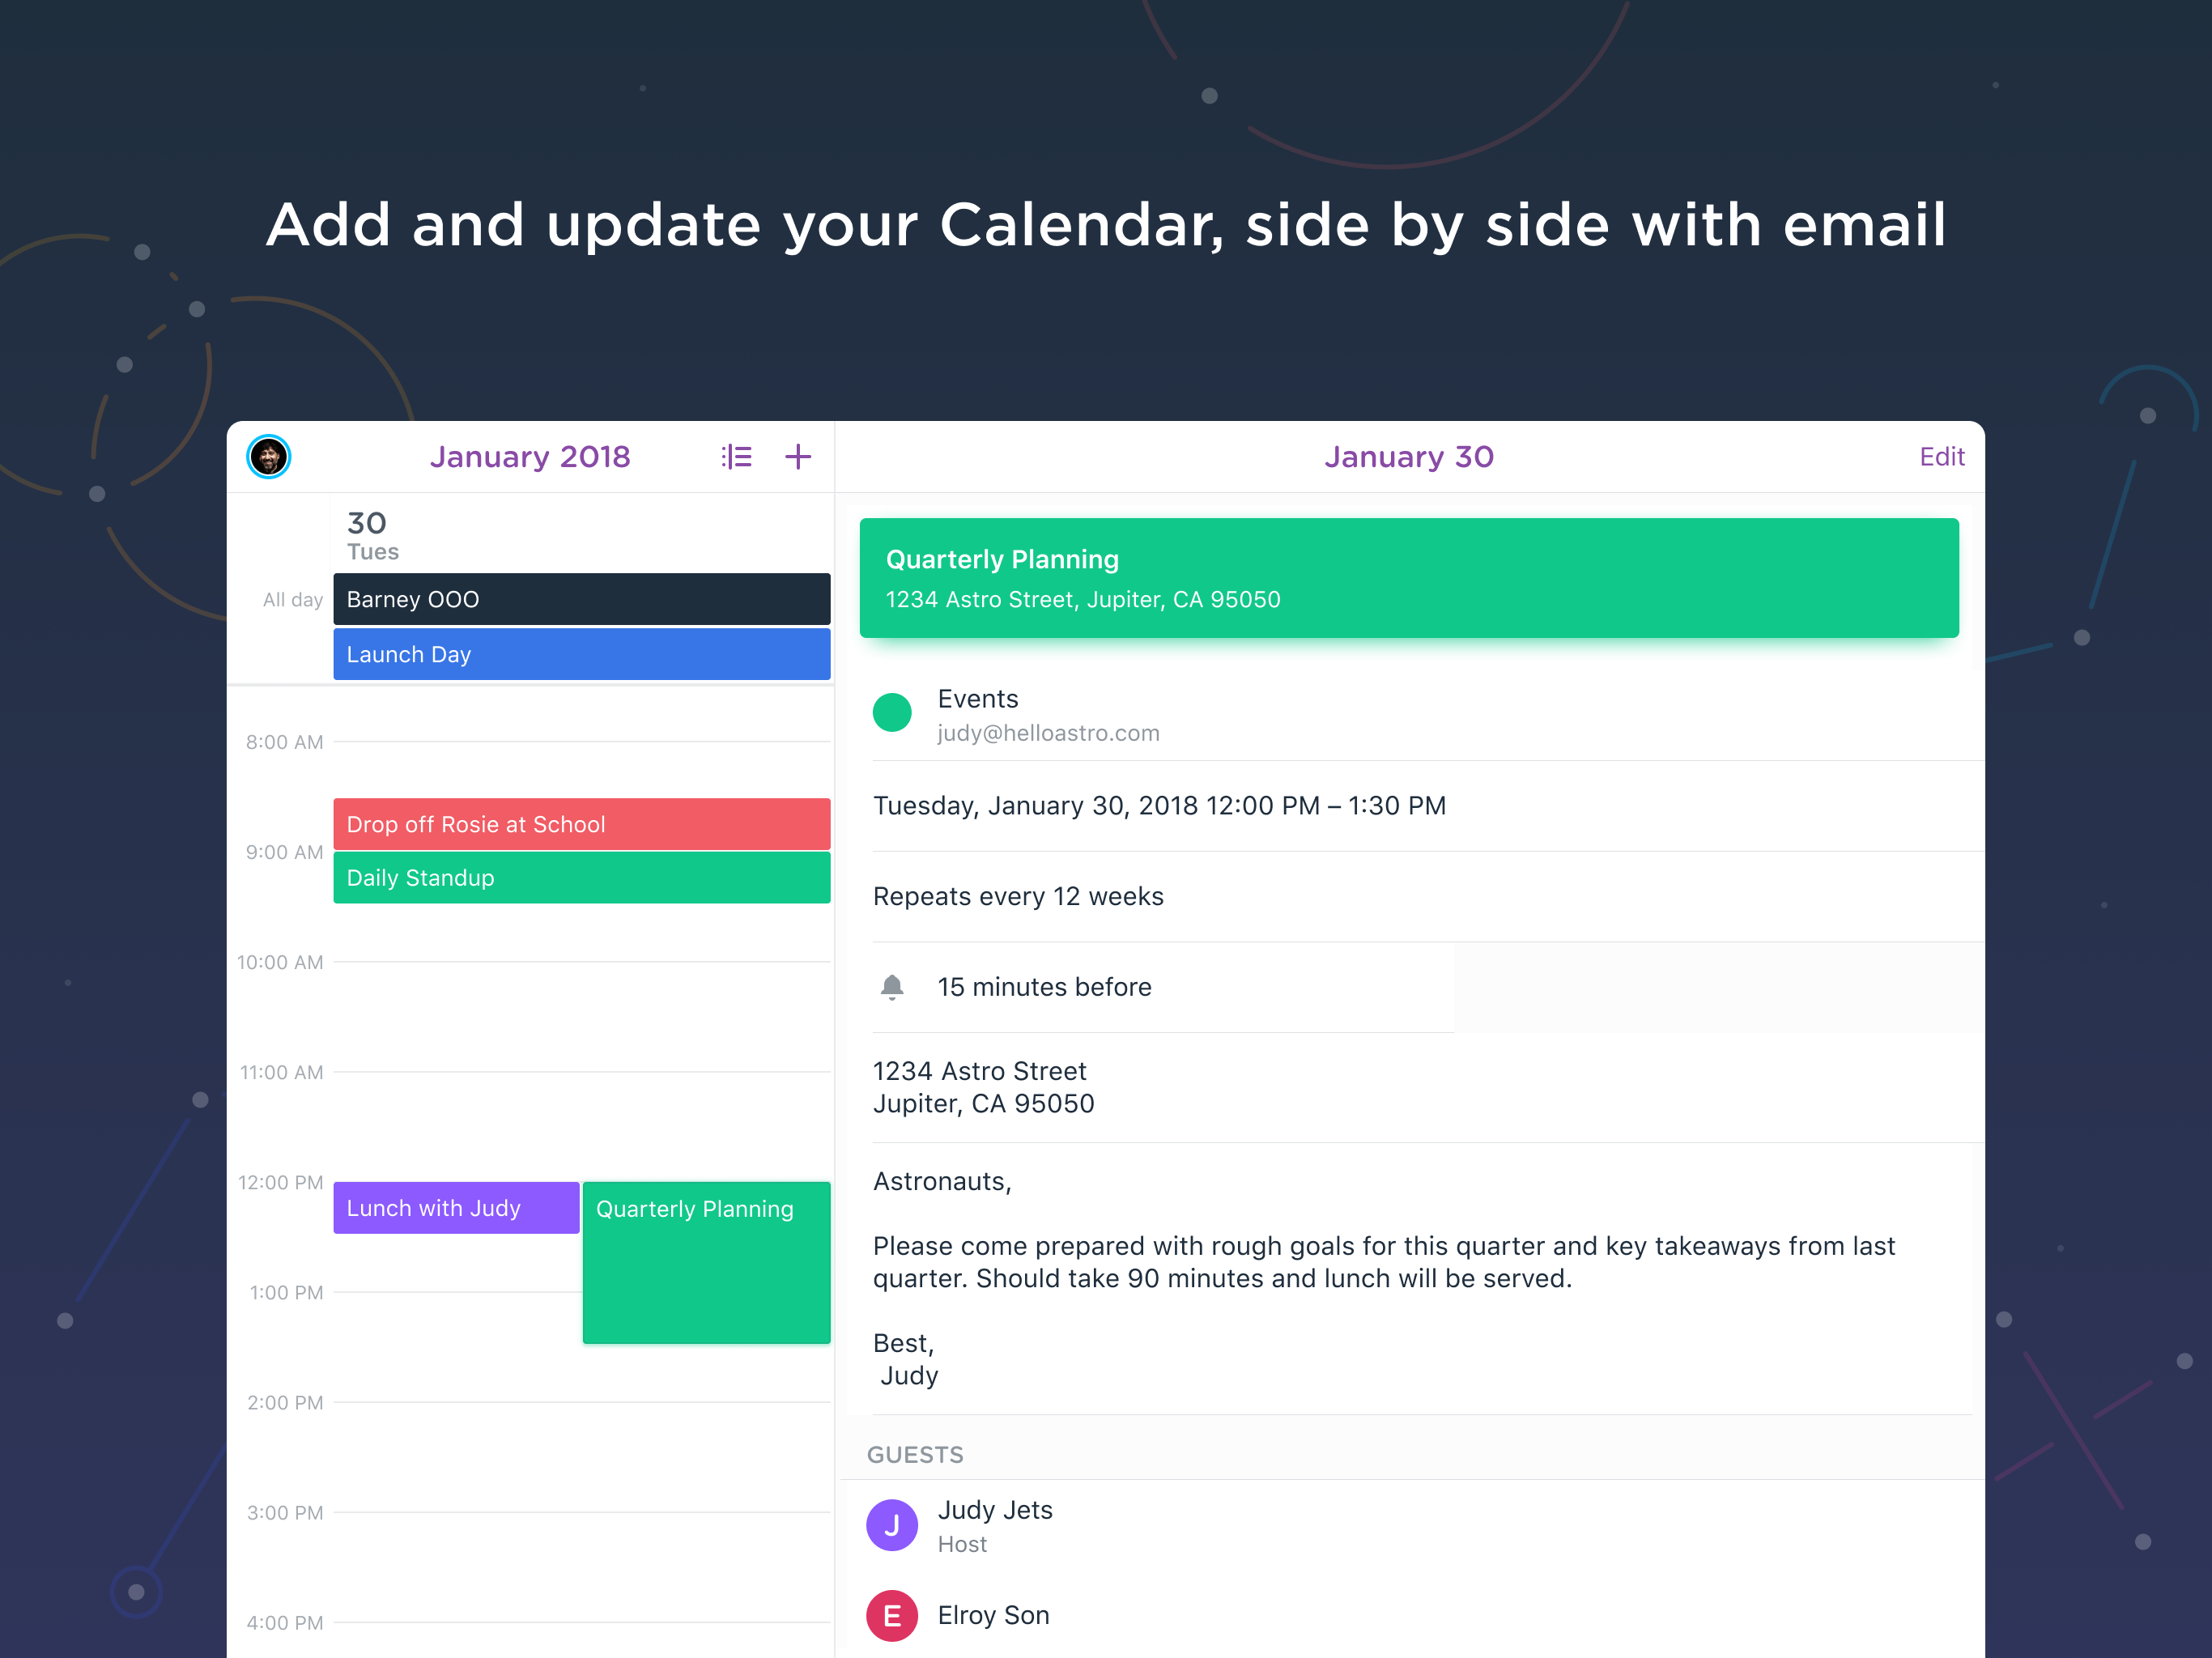 Astro Demo - Add and update your Calendar, side by side with email